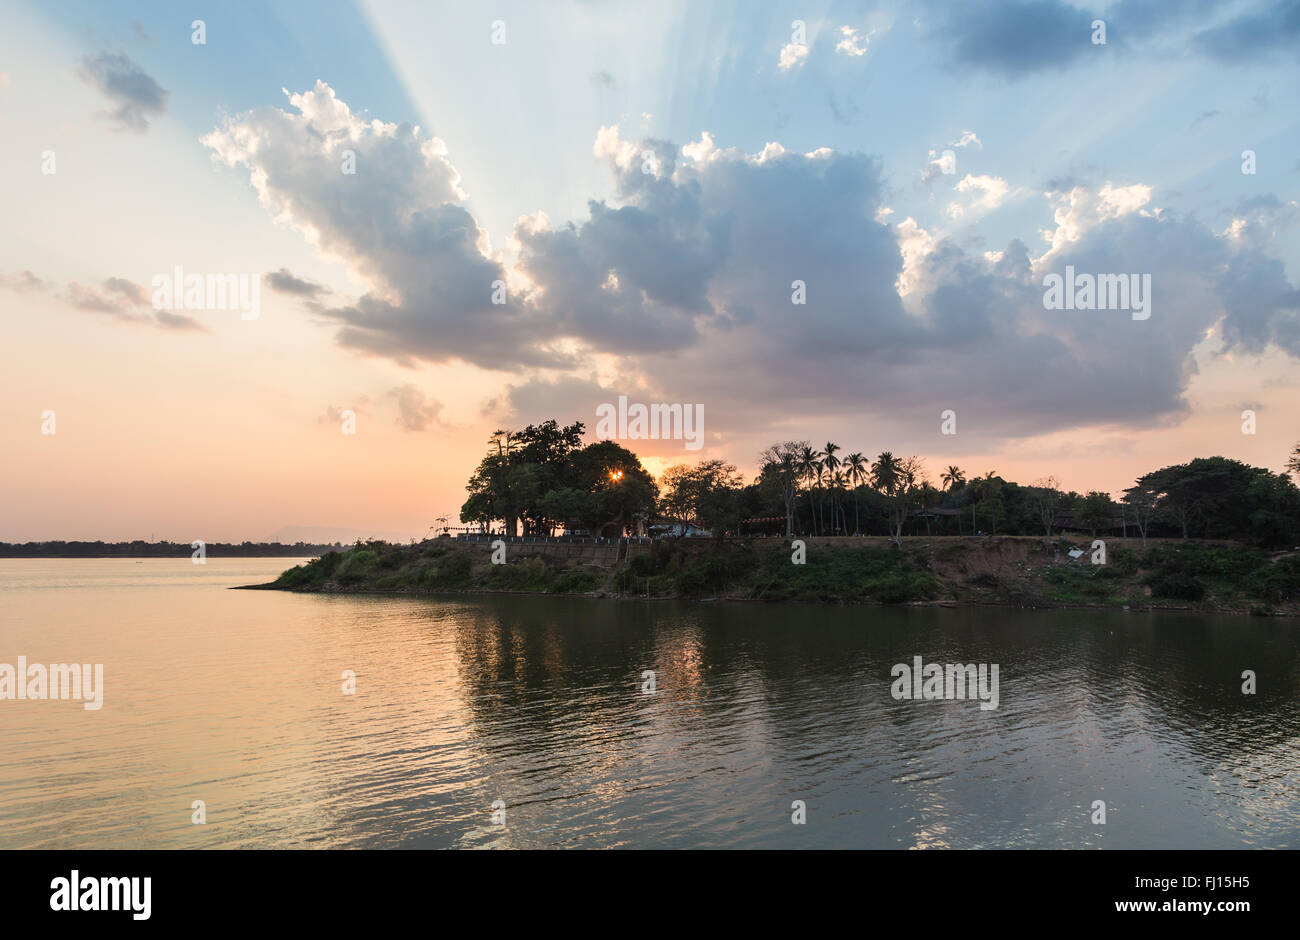 Stunning sunset over the Mekong river in Pakse in Champasak province in south Laos. Stock Photo